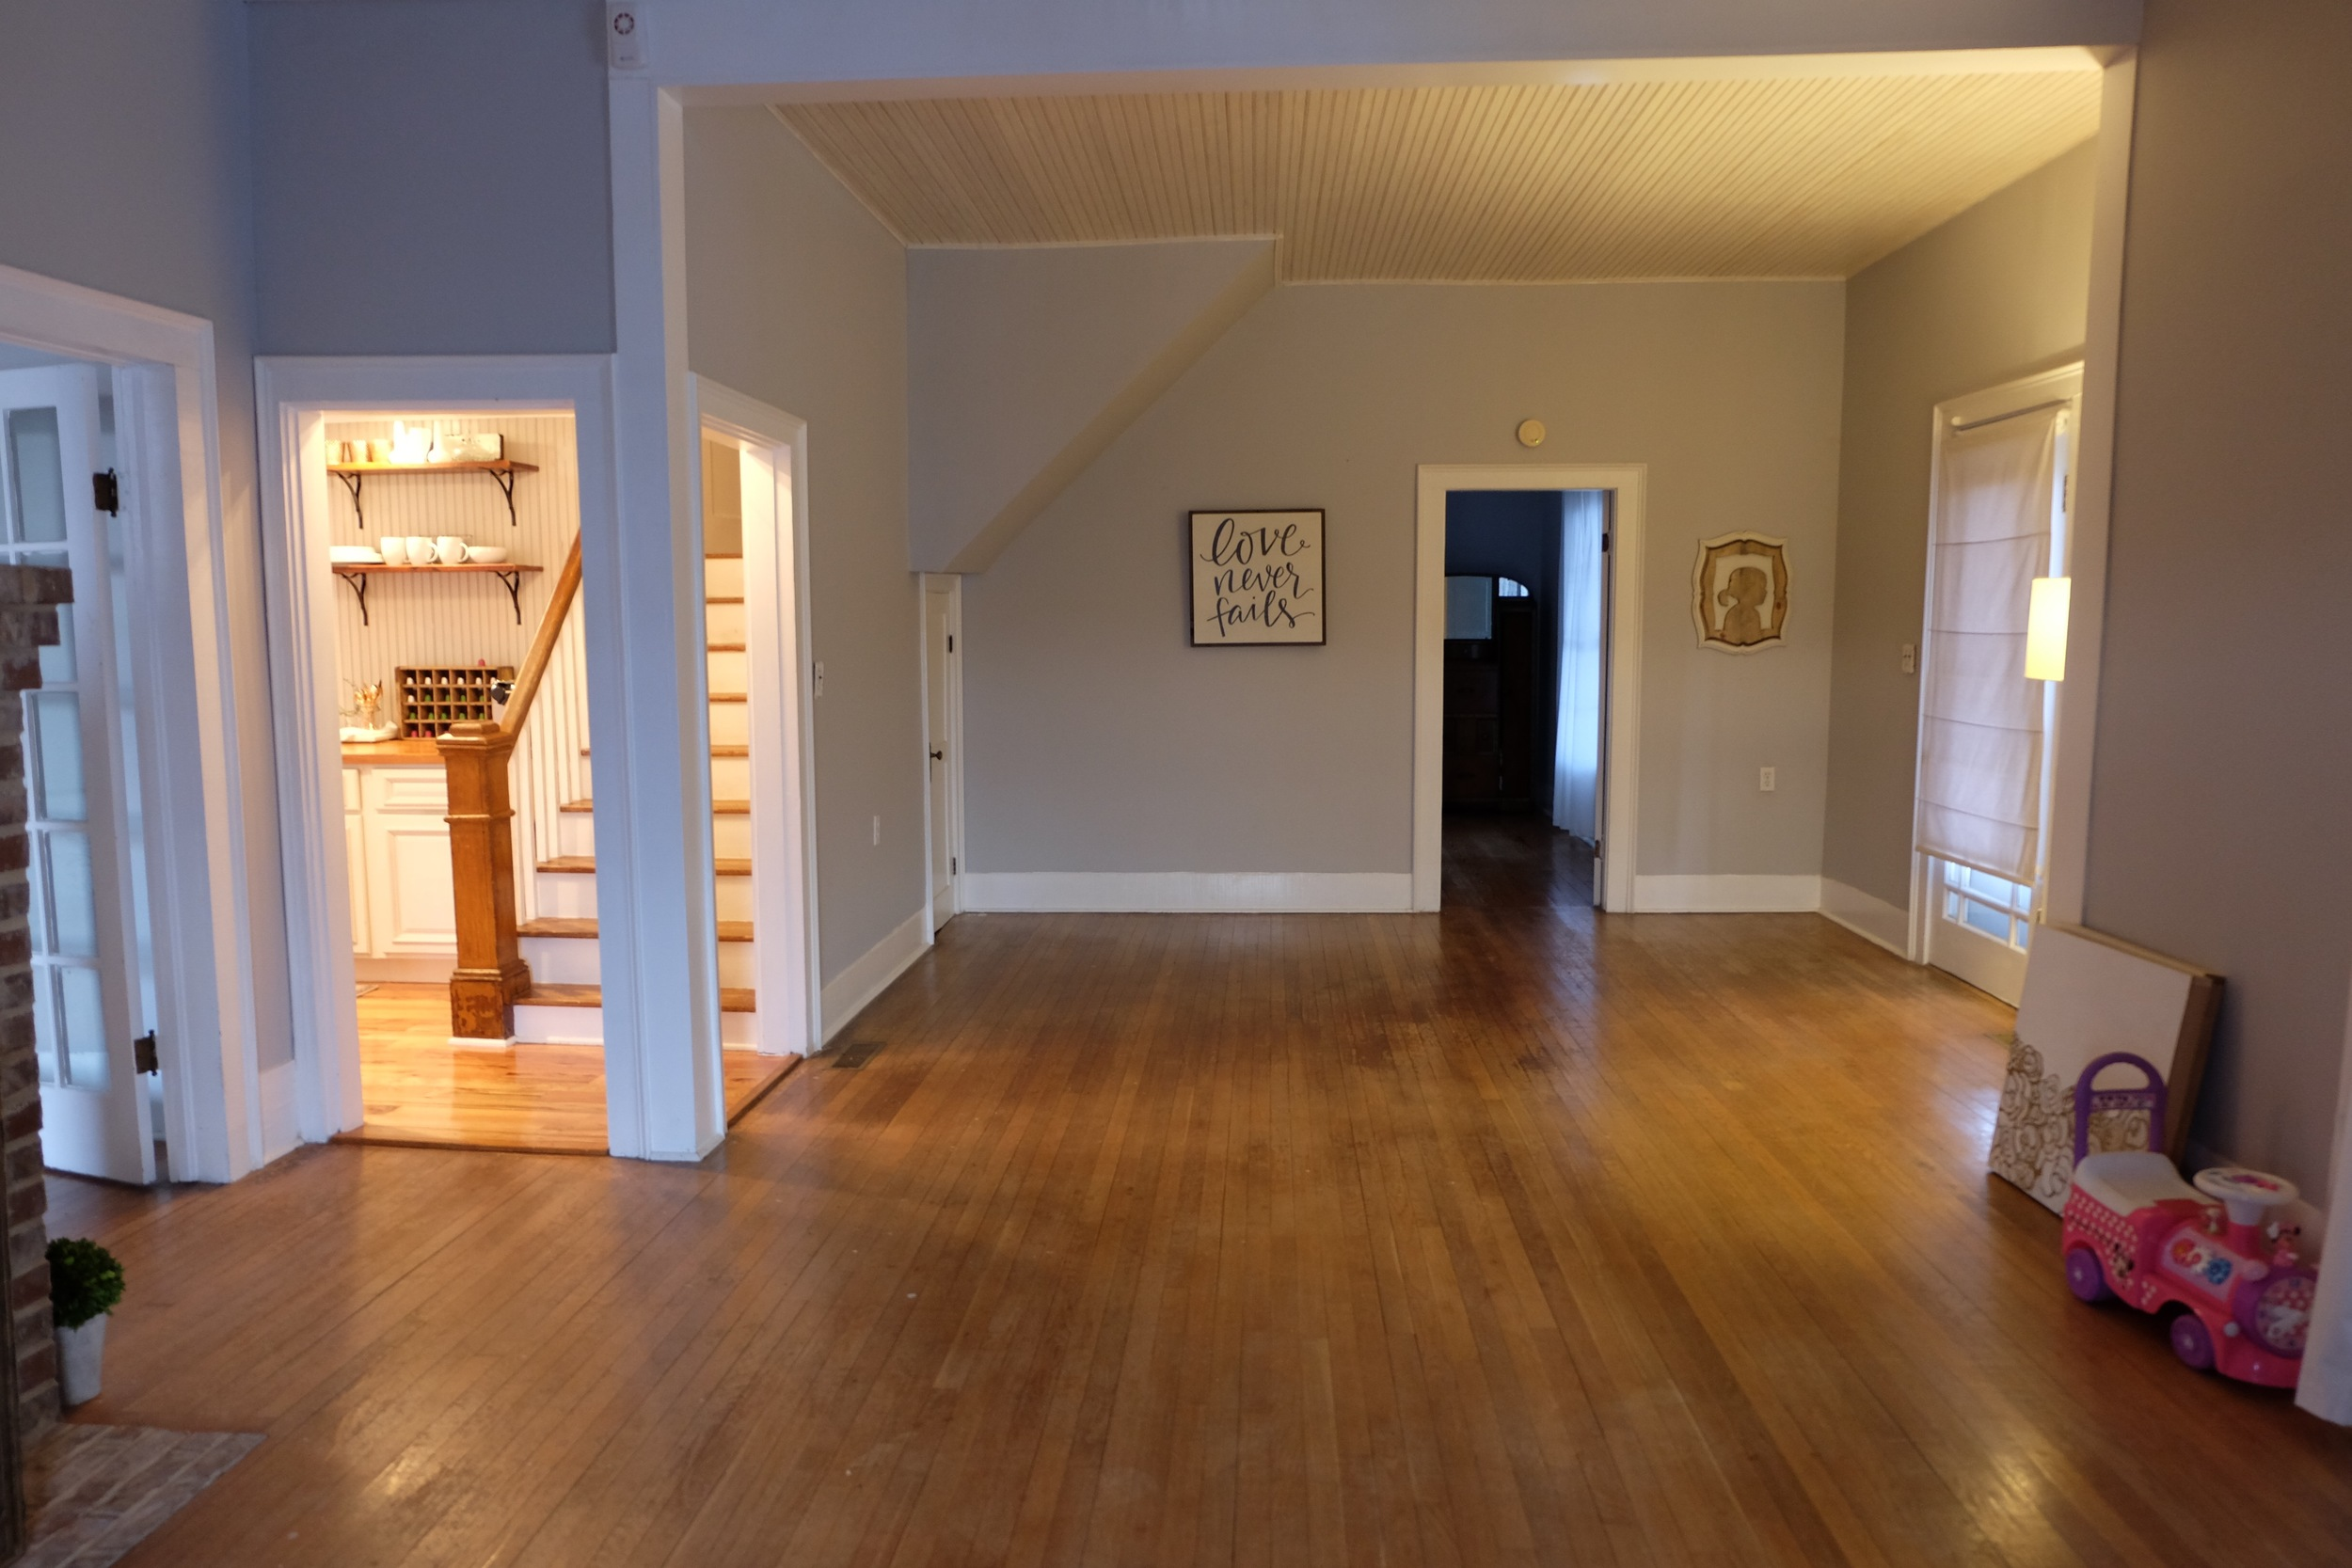 This is all the same room. It's a large living room and walkway into the kitchen & dining room. The door opened straight ahead goes to my bedroom.